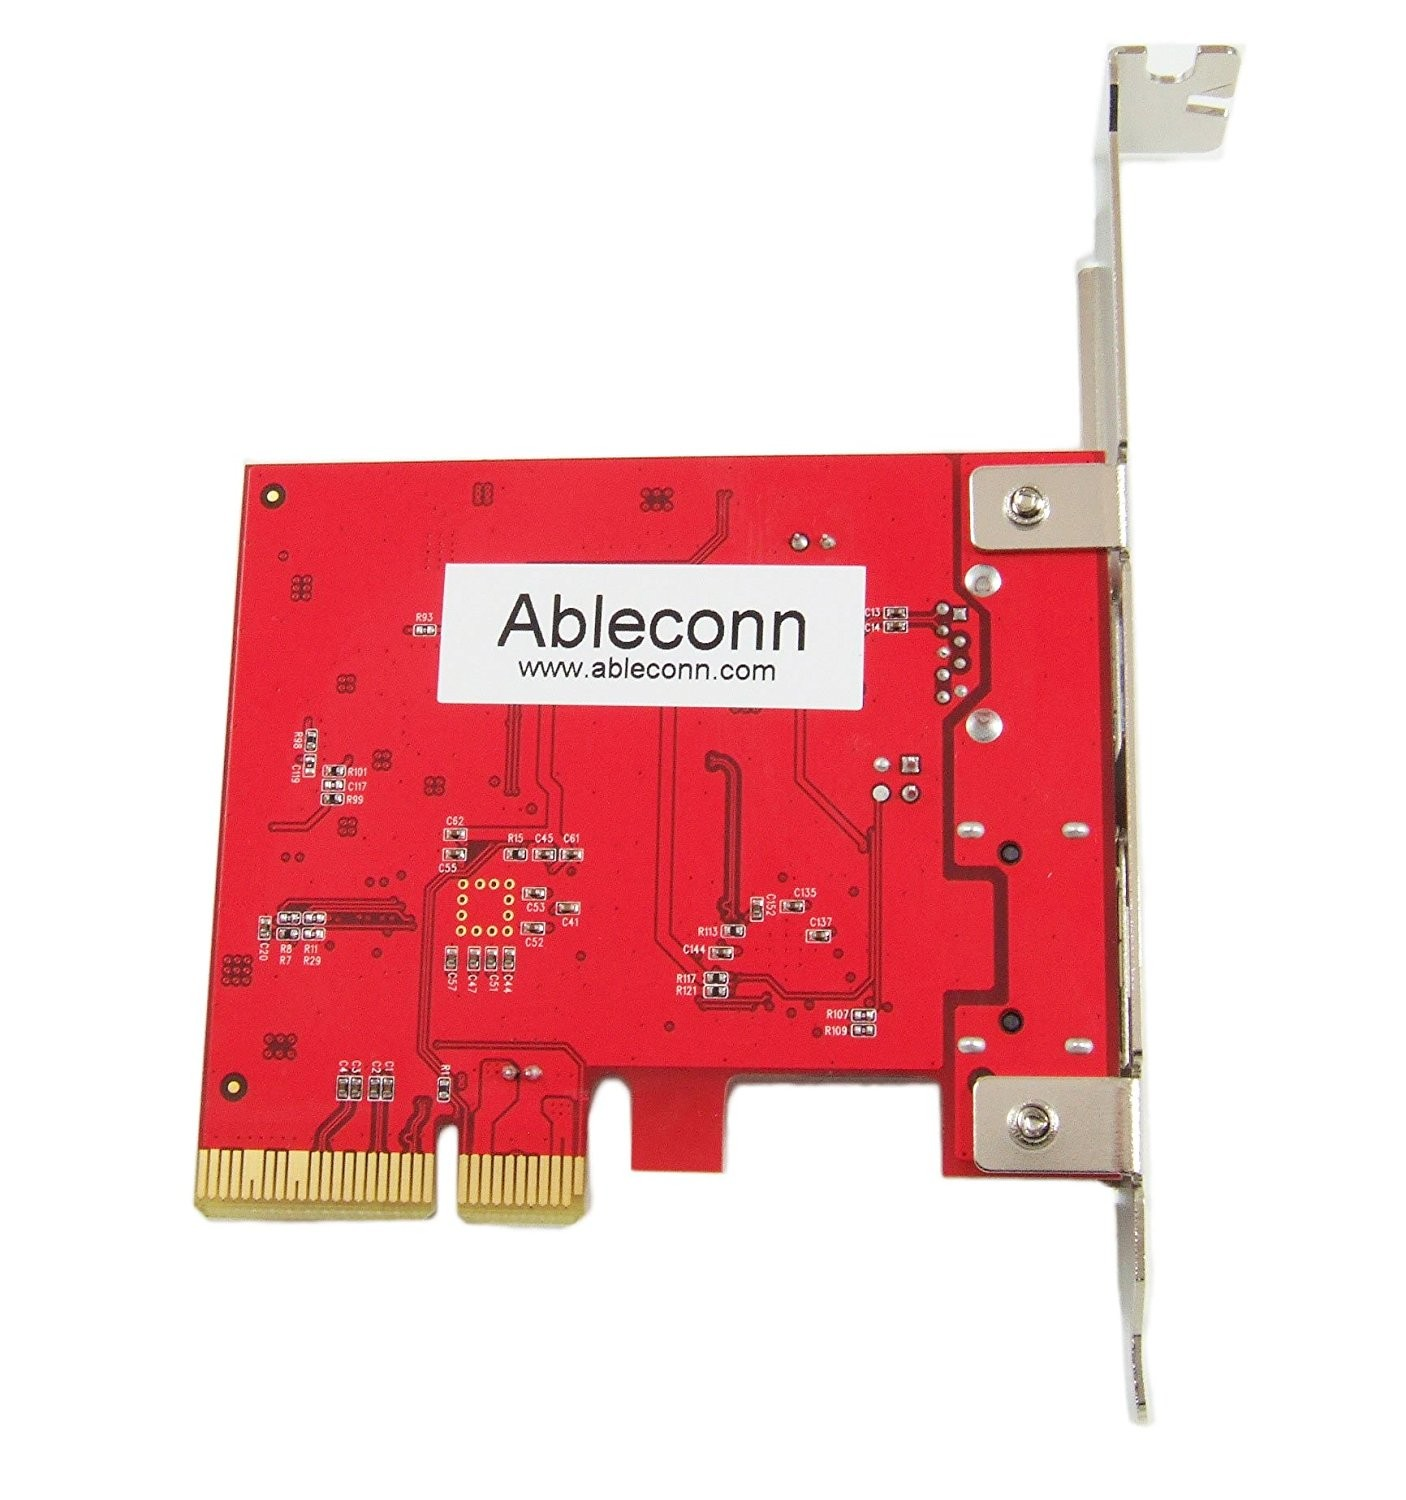 Ableconn 1-Port USB 3.1 10 Gbps Type-A & 1-Port eSATA III 6 Gbps PCI Express (PCIe) x4 Host Adapter Card For Mac Pro, PU31A-ESA